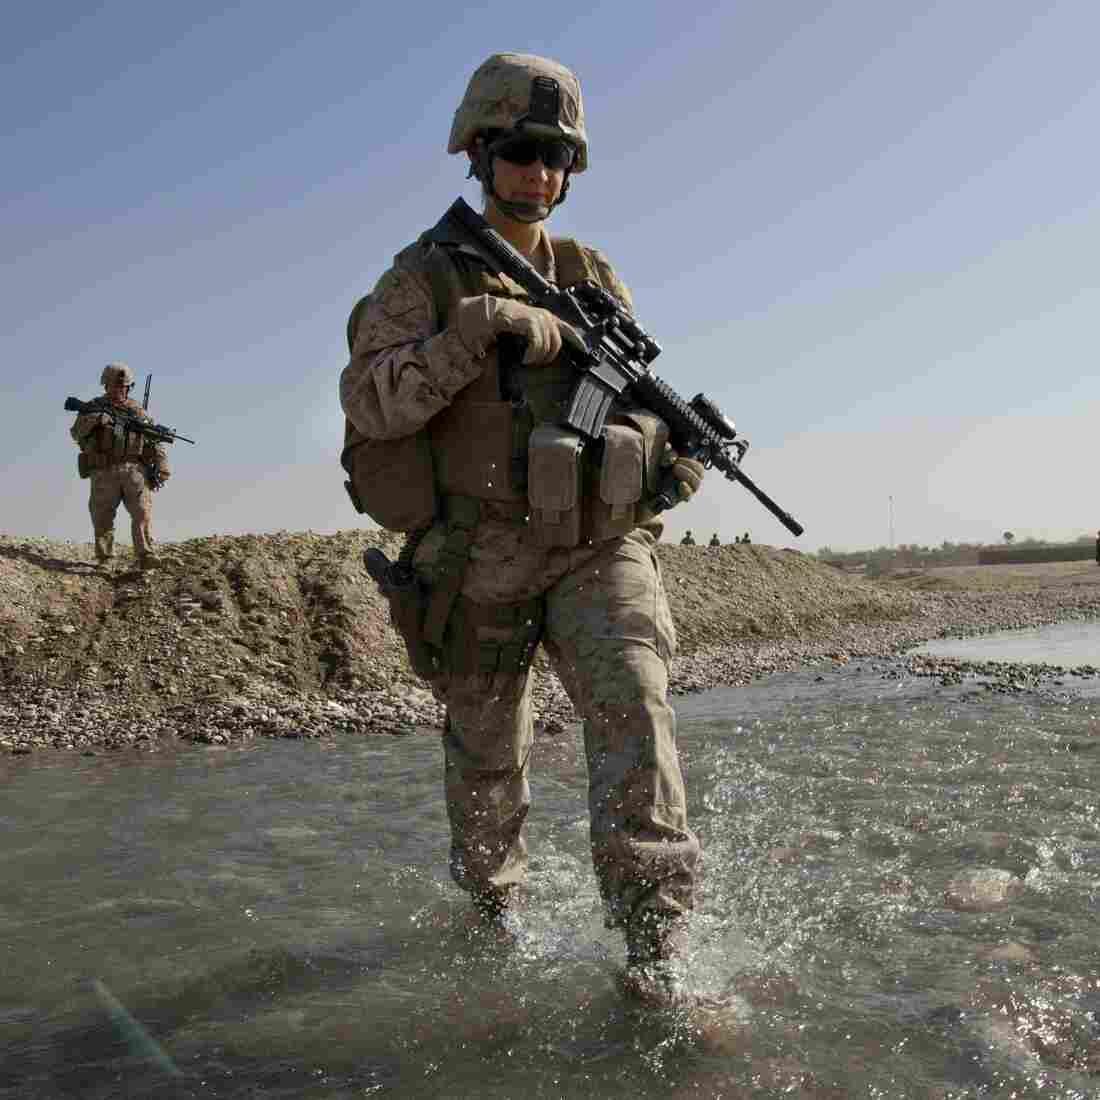 Combat? Reaction Of Many Women In Military Is 'Been There, Done That'